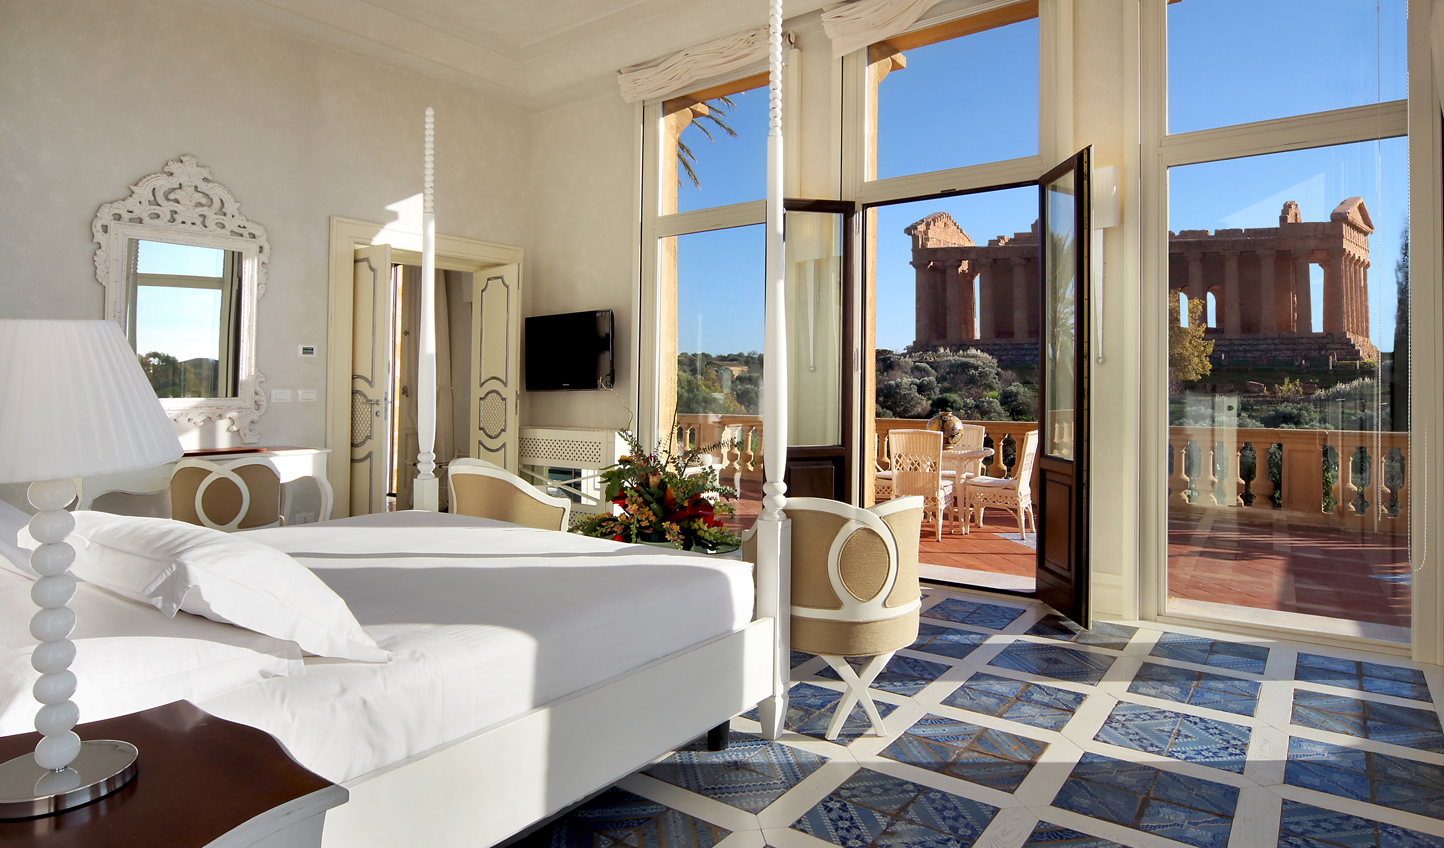 For The Best View In The House, Check Into The Villa Suite